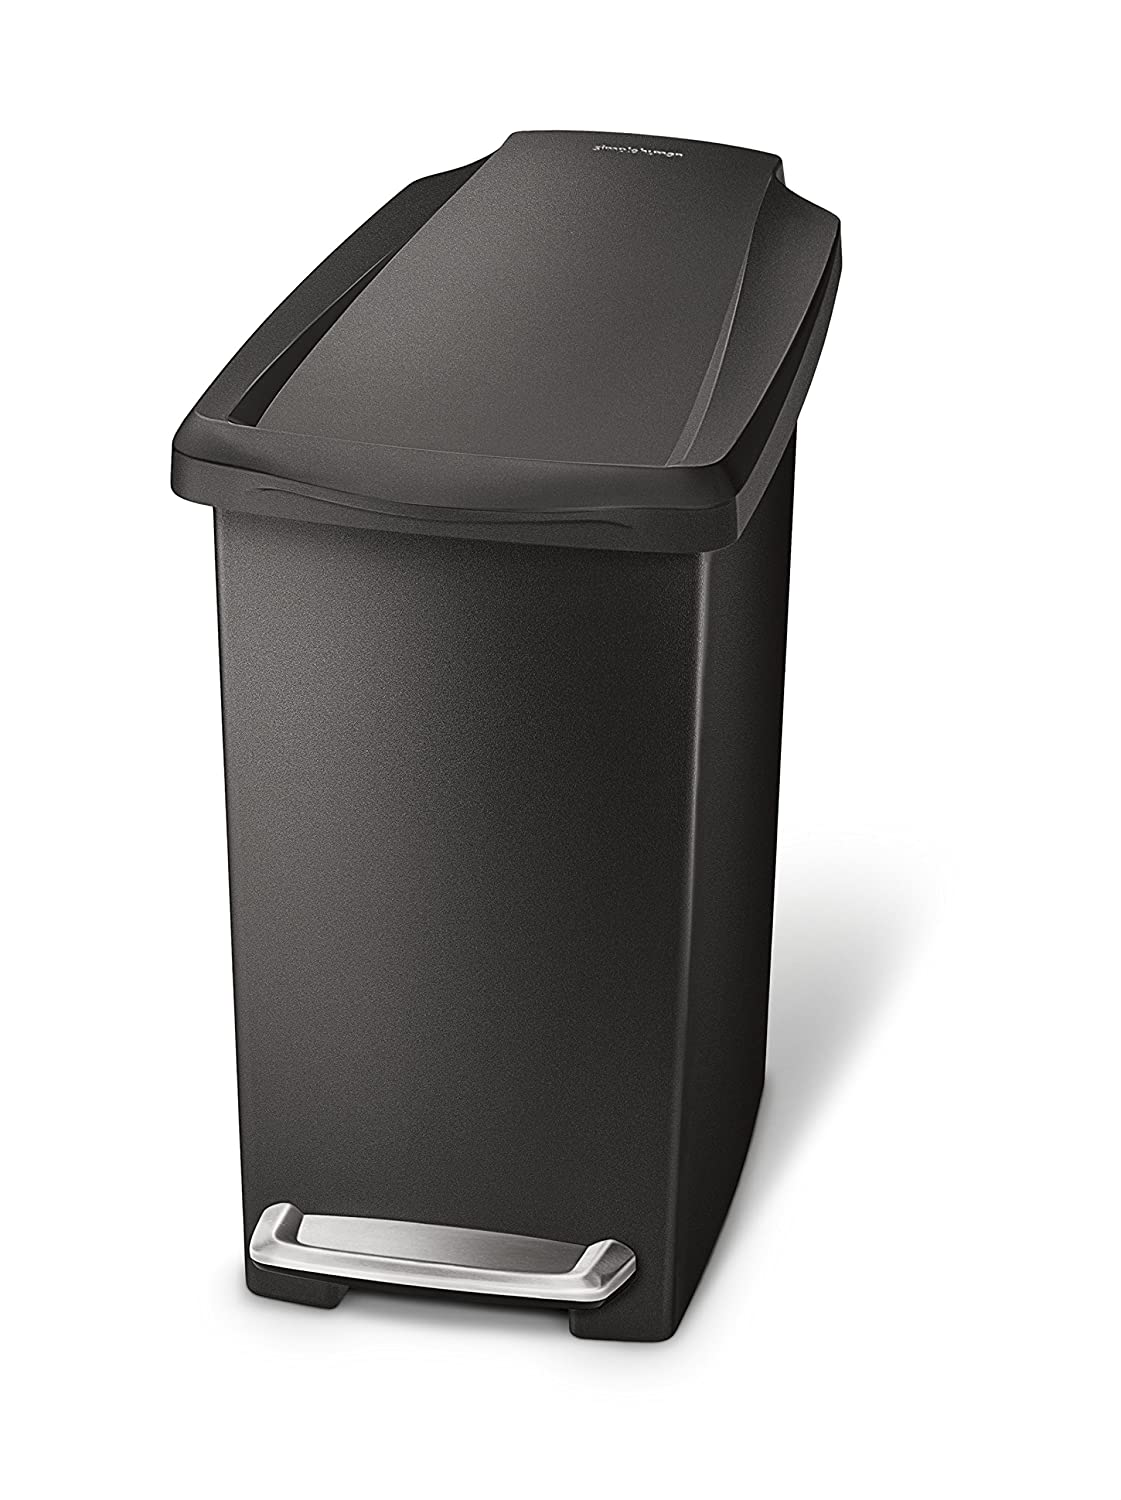 simplehuman Slim Step Trash Can, Black Plastic, 10L / 2.6 gallon CW1329